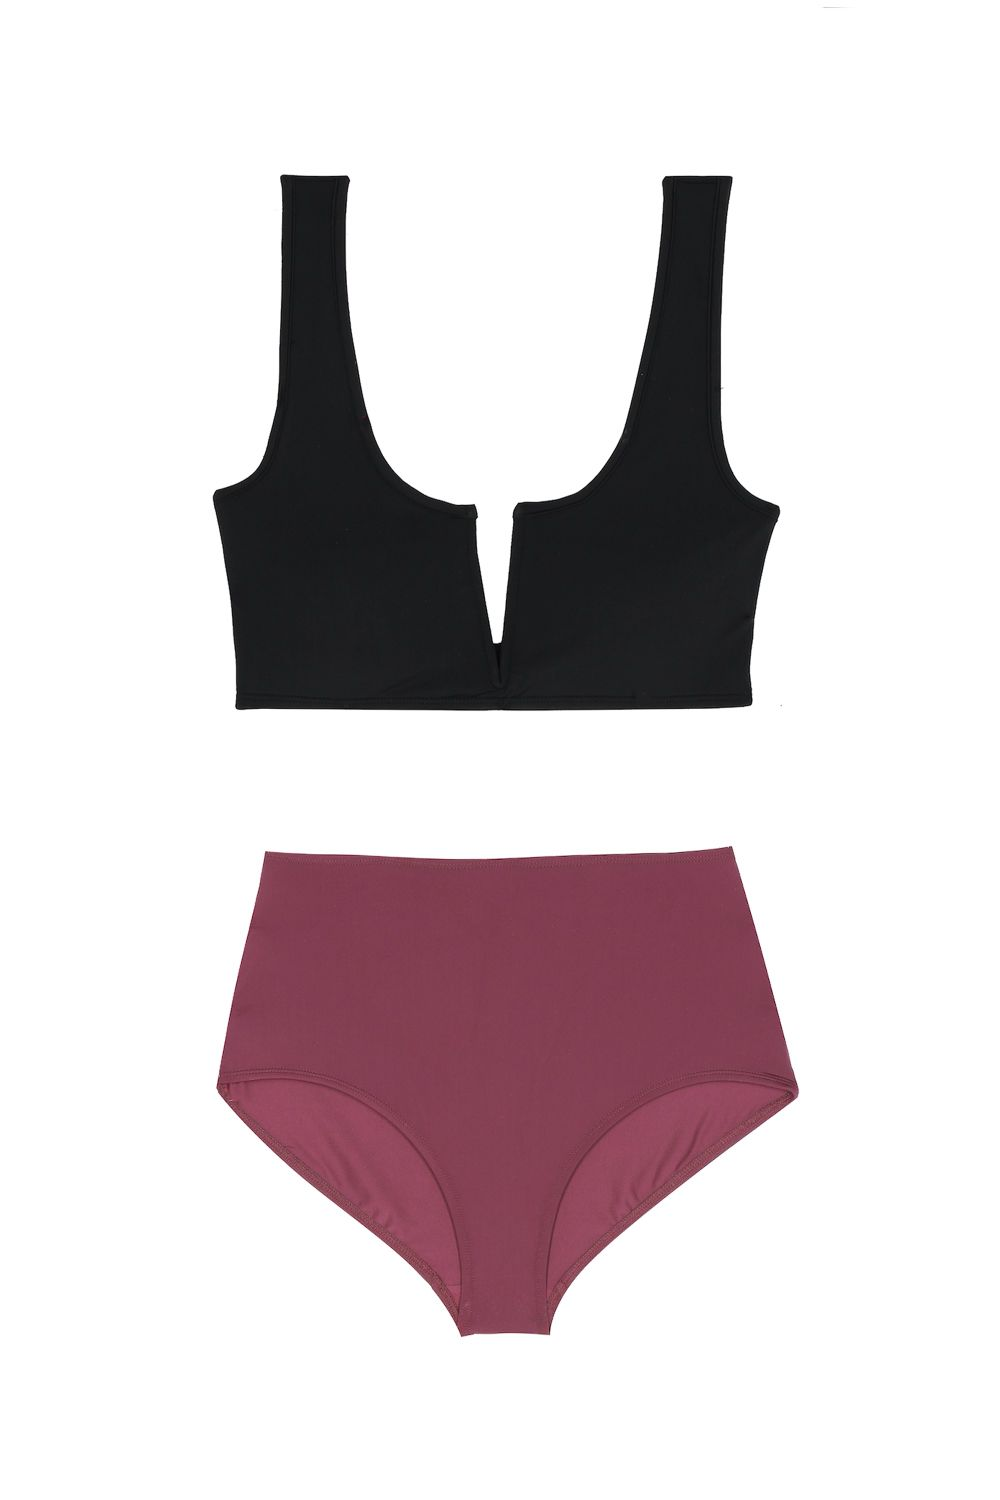 """<p>Fundamental in choosing the most flattering suit possible: sharp lines and simplicity. Thenotched neckline and belly-covering bottoms do just that.</p><p>Top, $130, <a href=""""http://www.mytheresa.com/en-us/001316-ines-bikini-top-783147.html?catref=category"""" target=""""_blank"""" data-tracking-id=""""recirc-text-link"""">mytheresa.com</a>; bottoms, $110, <a href=""""http://www.mytheresa.com/en-us/001316-high-waist-bikini-bottom-783157.html?catref=category"""" target=""""_blank"""" data-tracking-id=""""recirc-text-link"""">mytheresa.com</a>.</p>"""